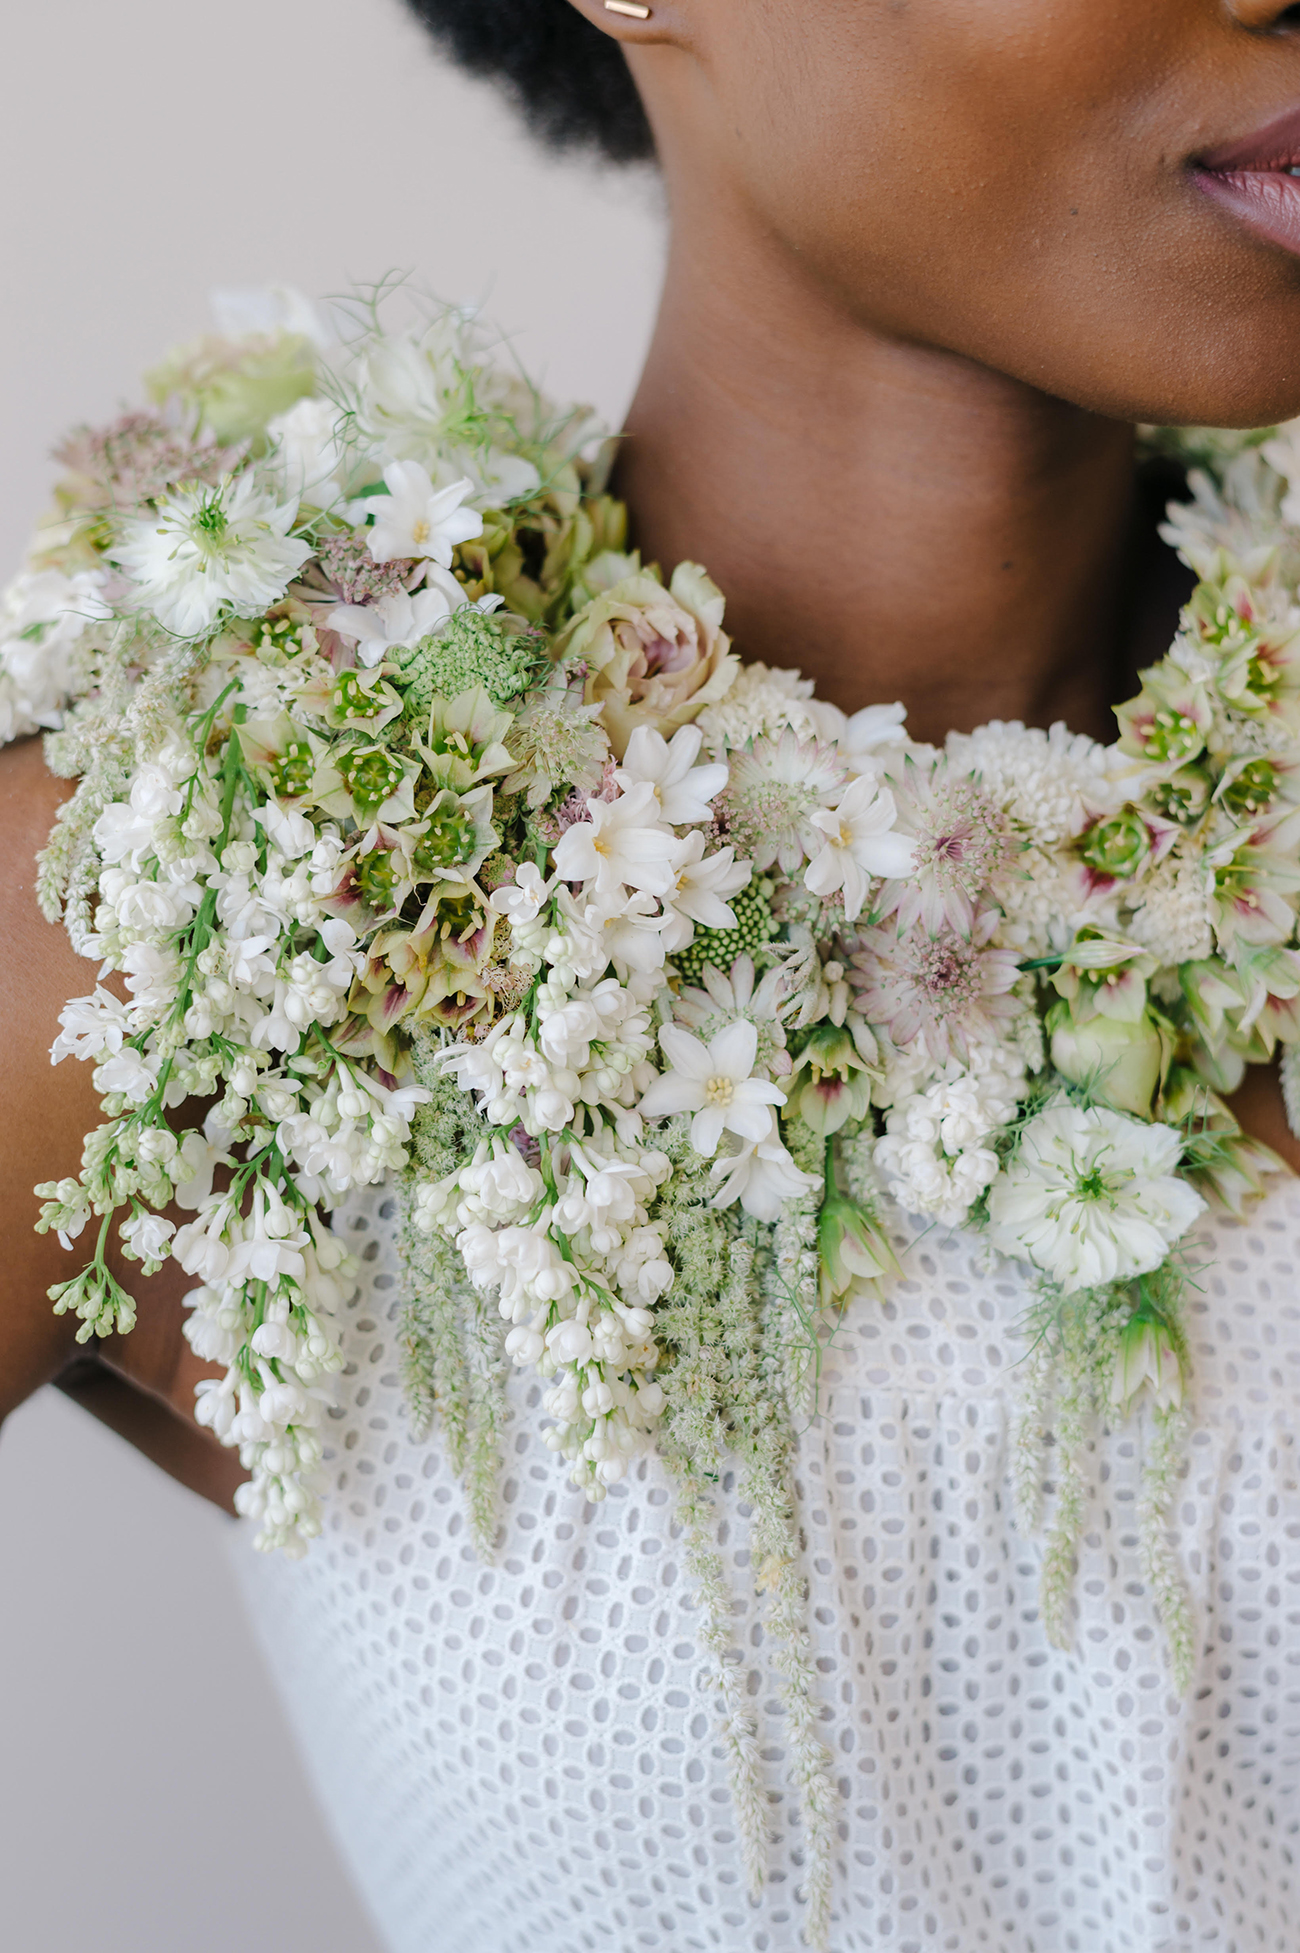 Wearable Floral Designs